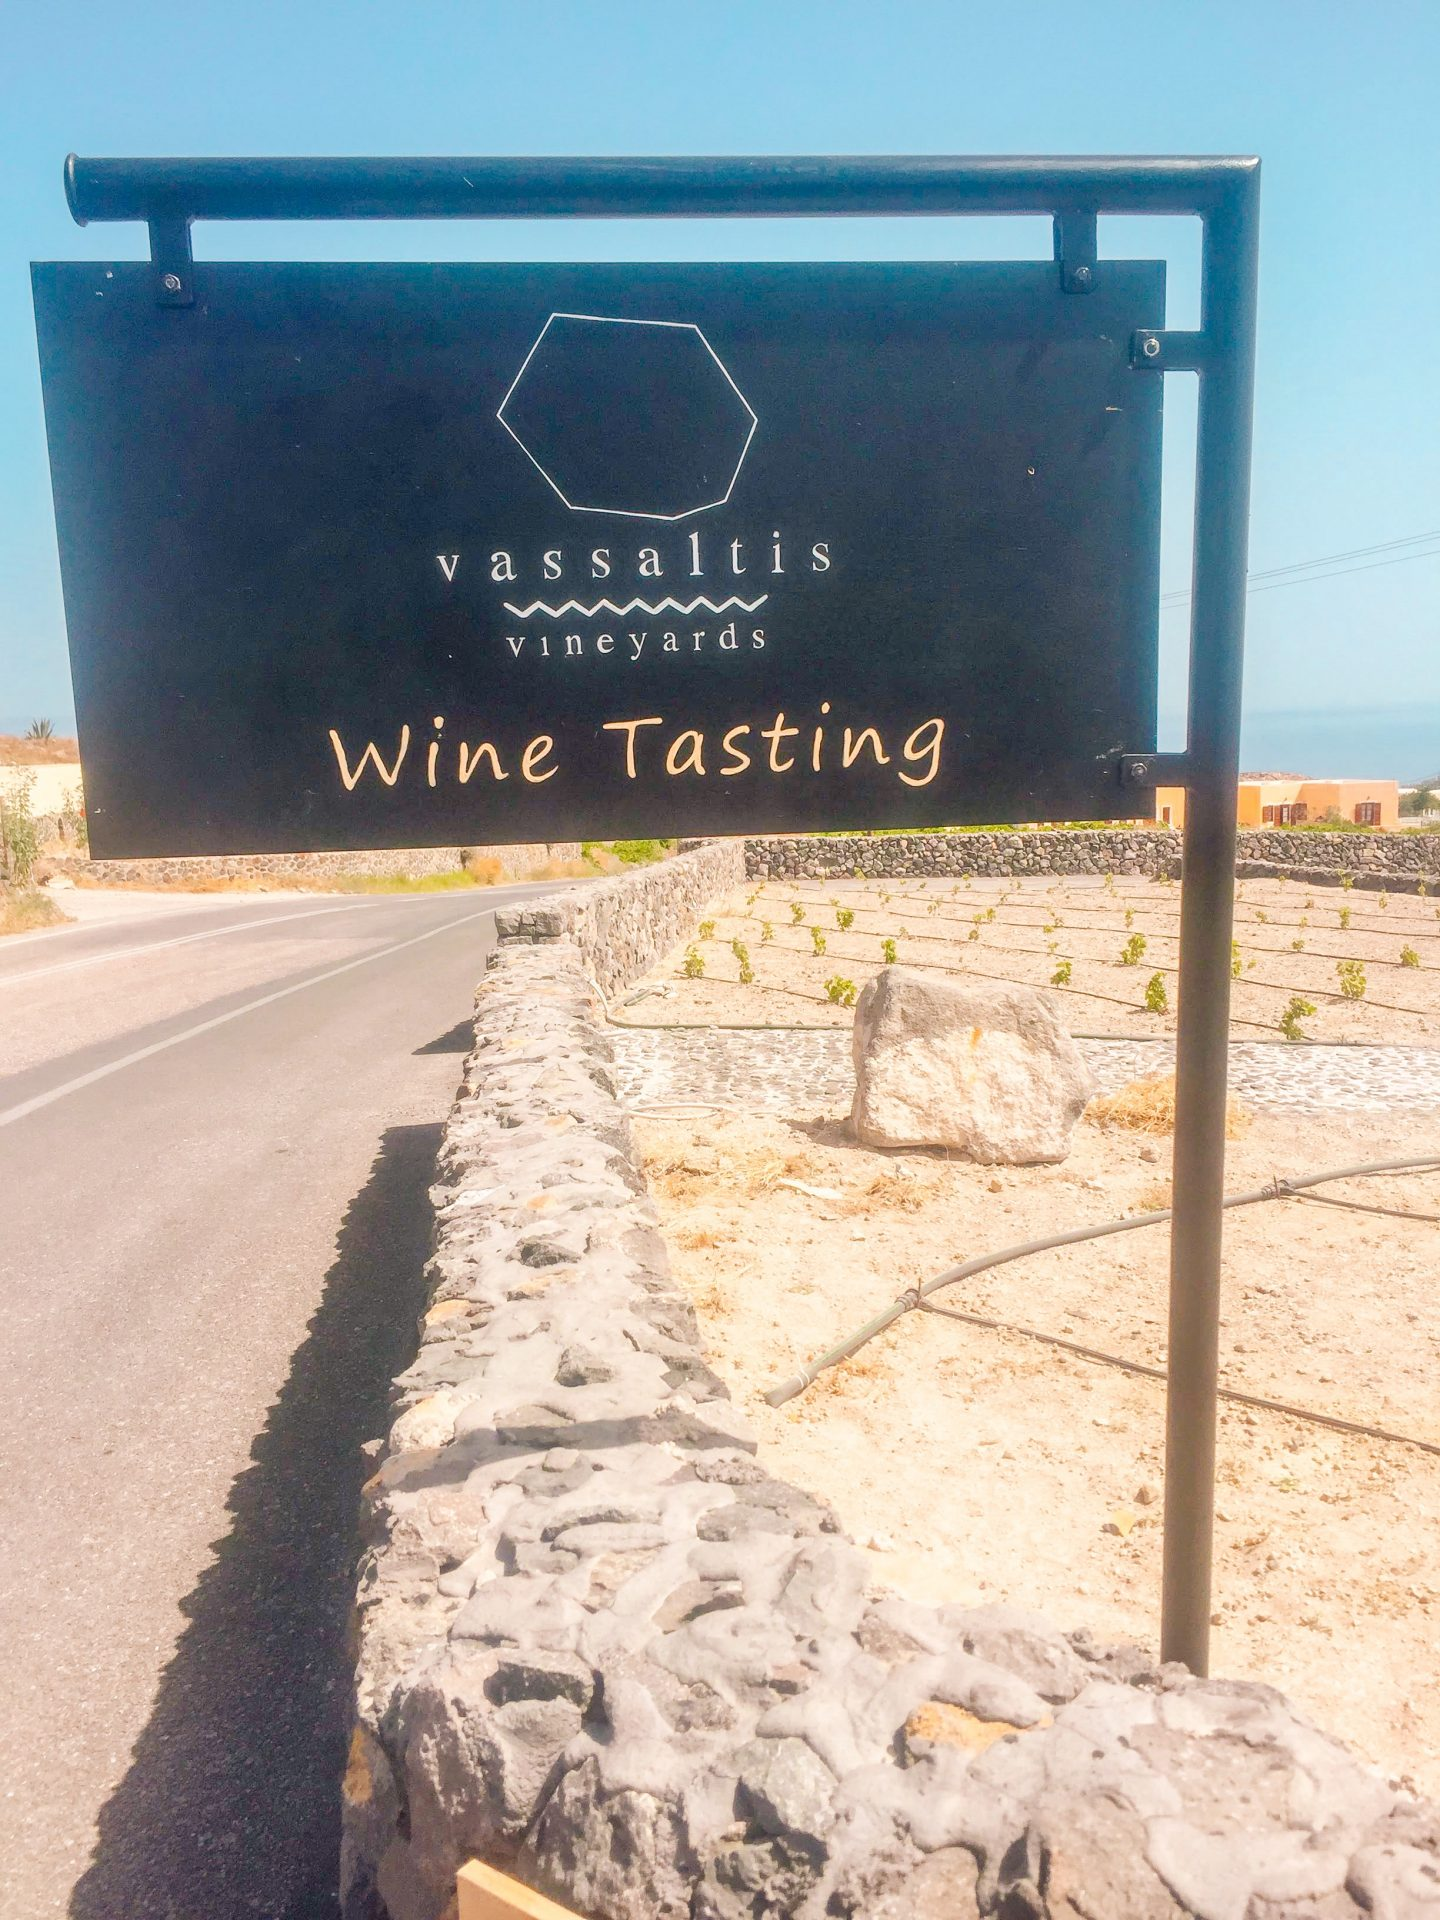 vassaltis winery sign and vineyards in the background on Santorini in Greece